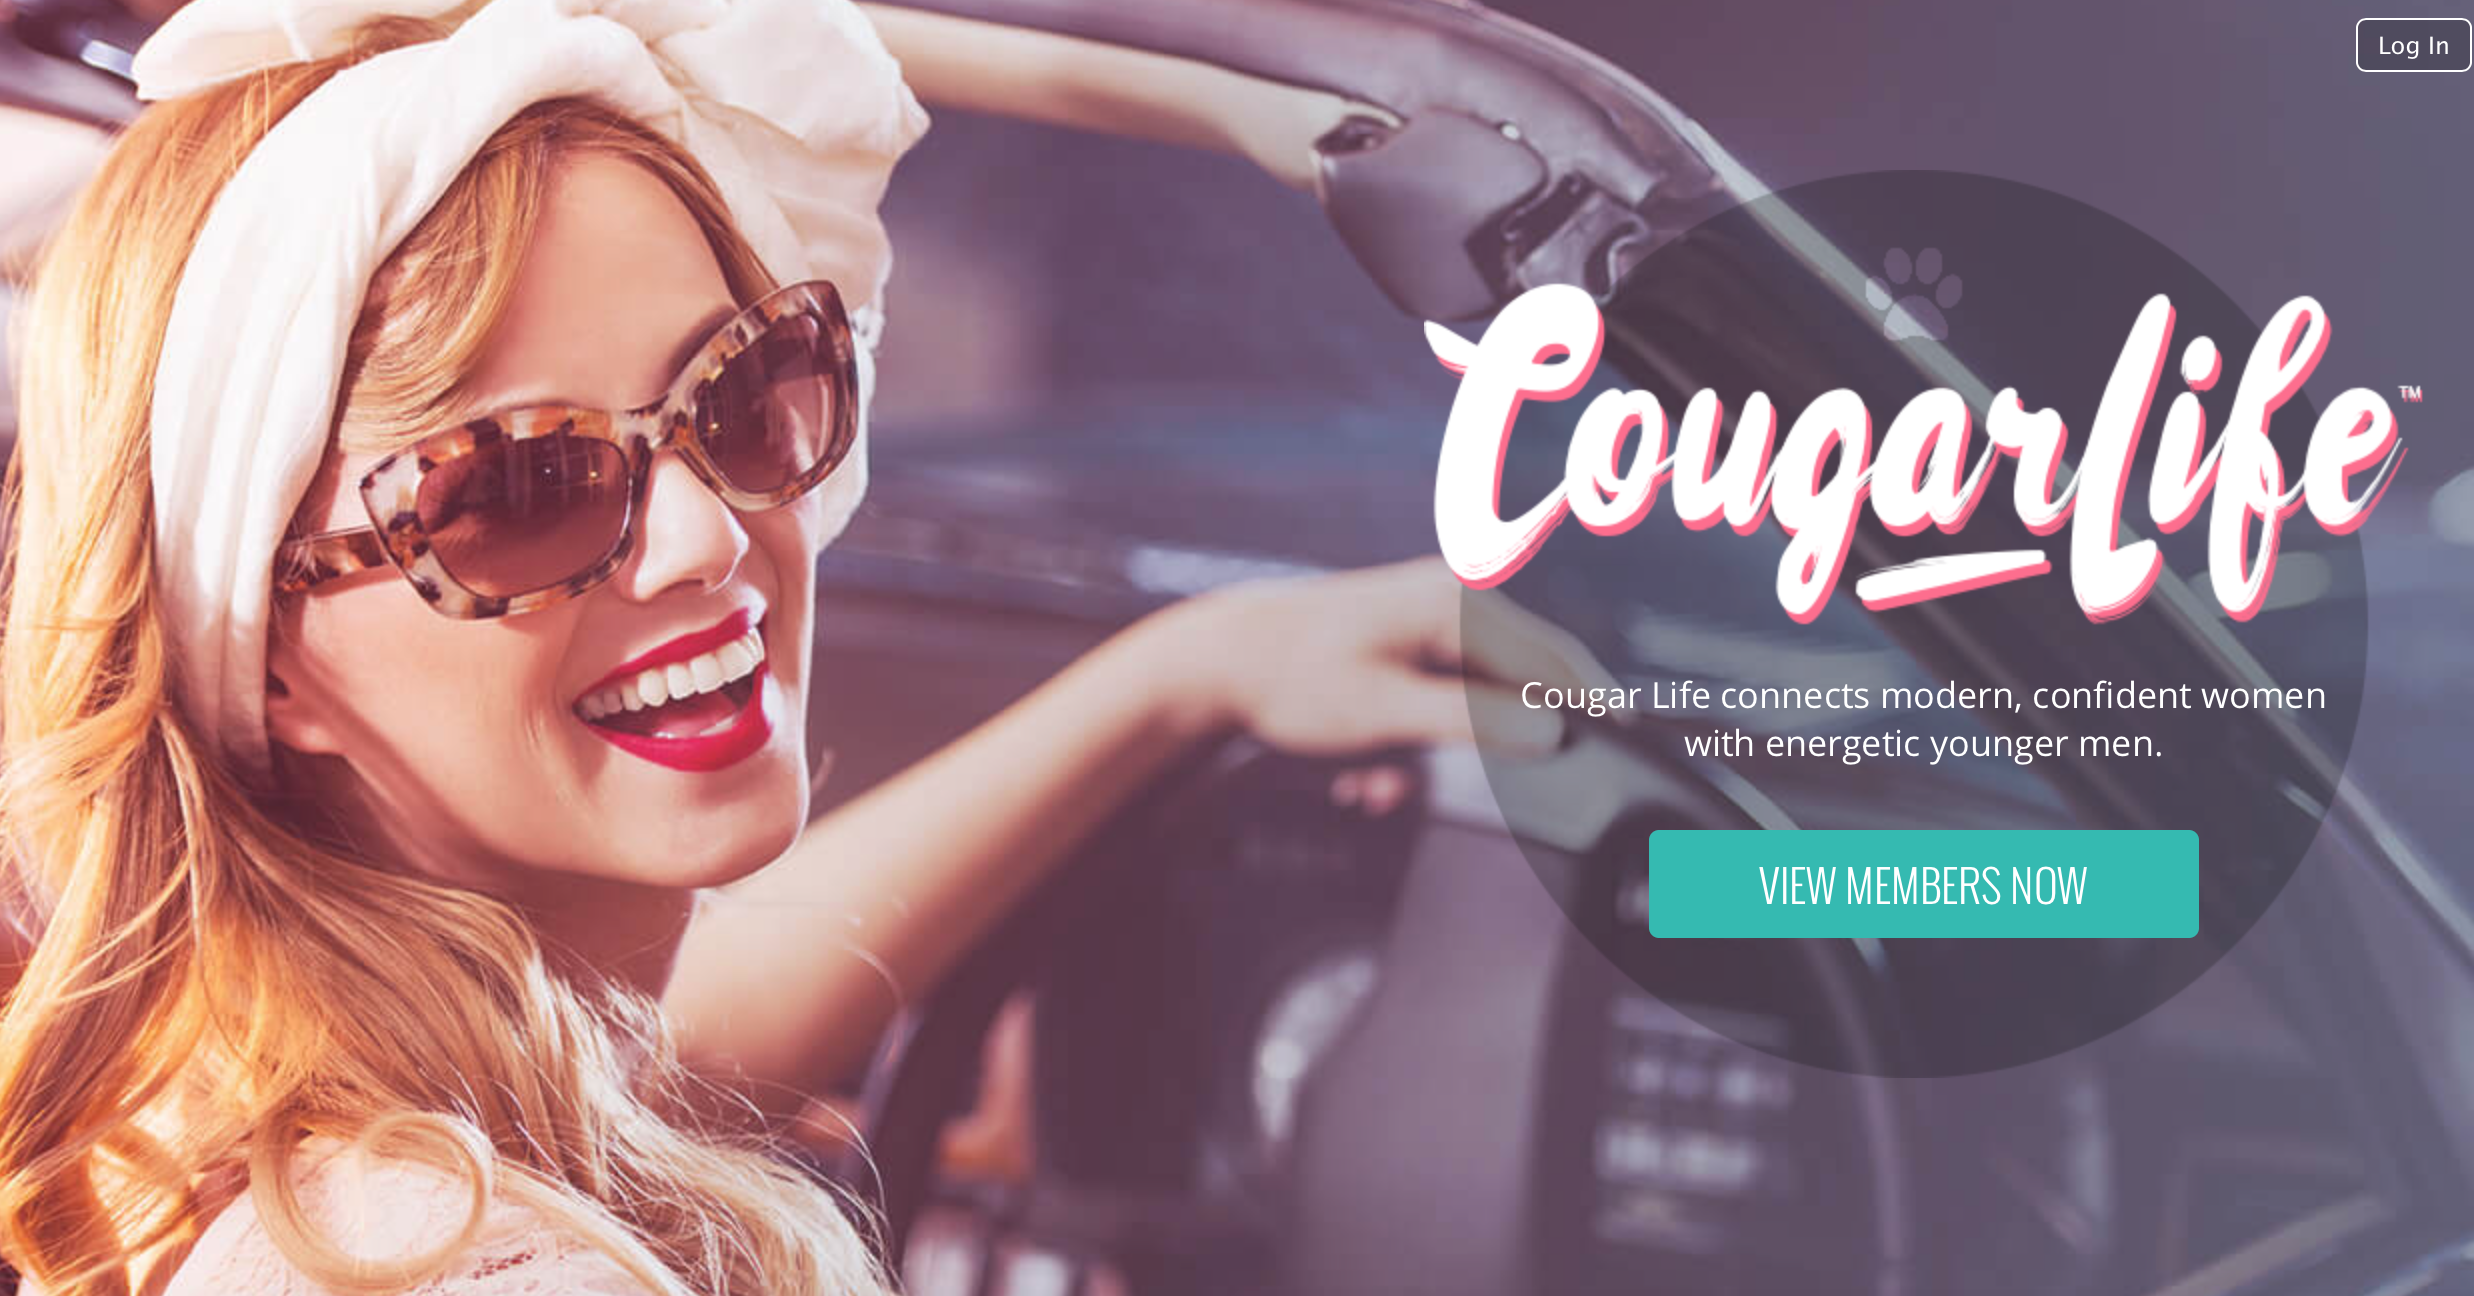 parker cougars dating site Parker's best 100% free cougar dating site meet thousands of single cougars in parker with mingle2's free personal ads and chat rooms our network of cougar women in parker is the perfect place to make friends or find a cougar girlfriend in parker.